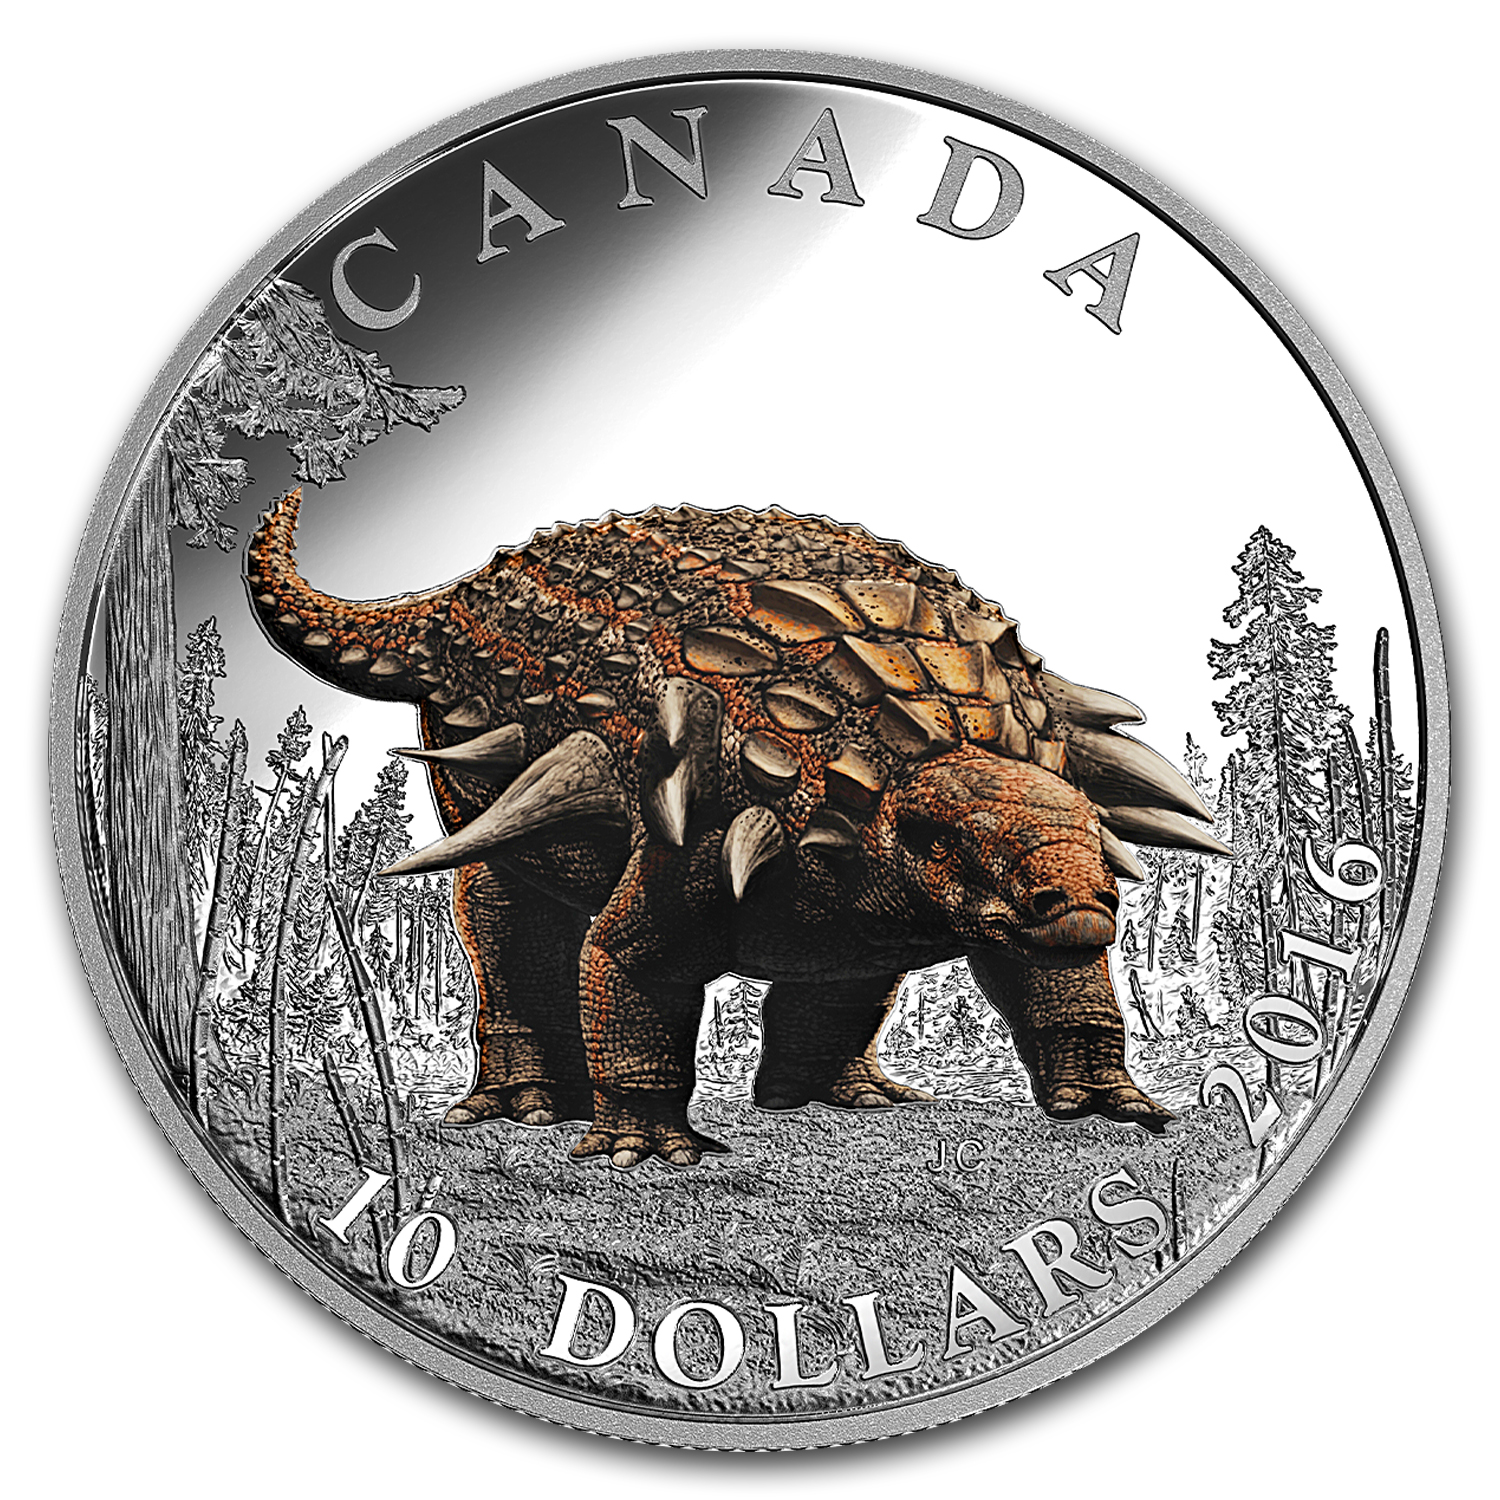 2016 Canada 1/2 oz Silver $10 Day of Dinosaurs: Armored Tank